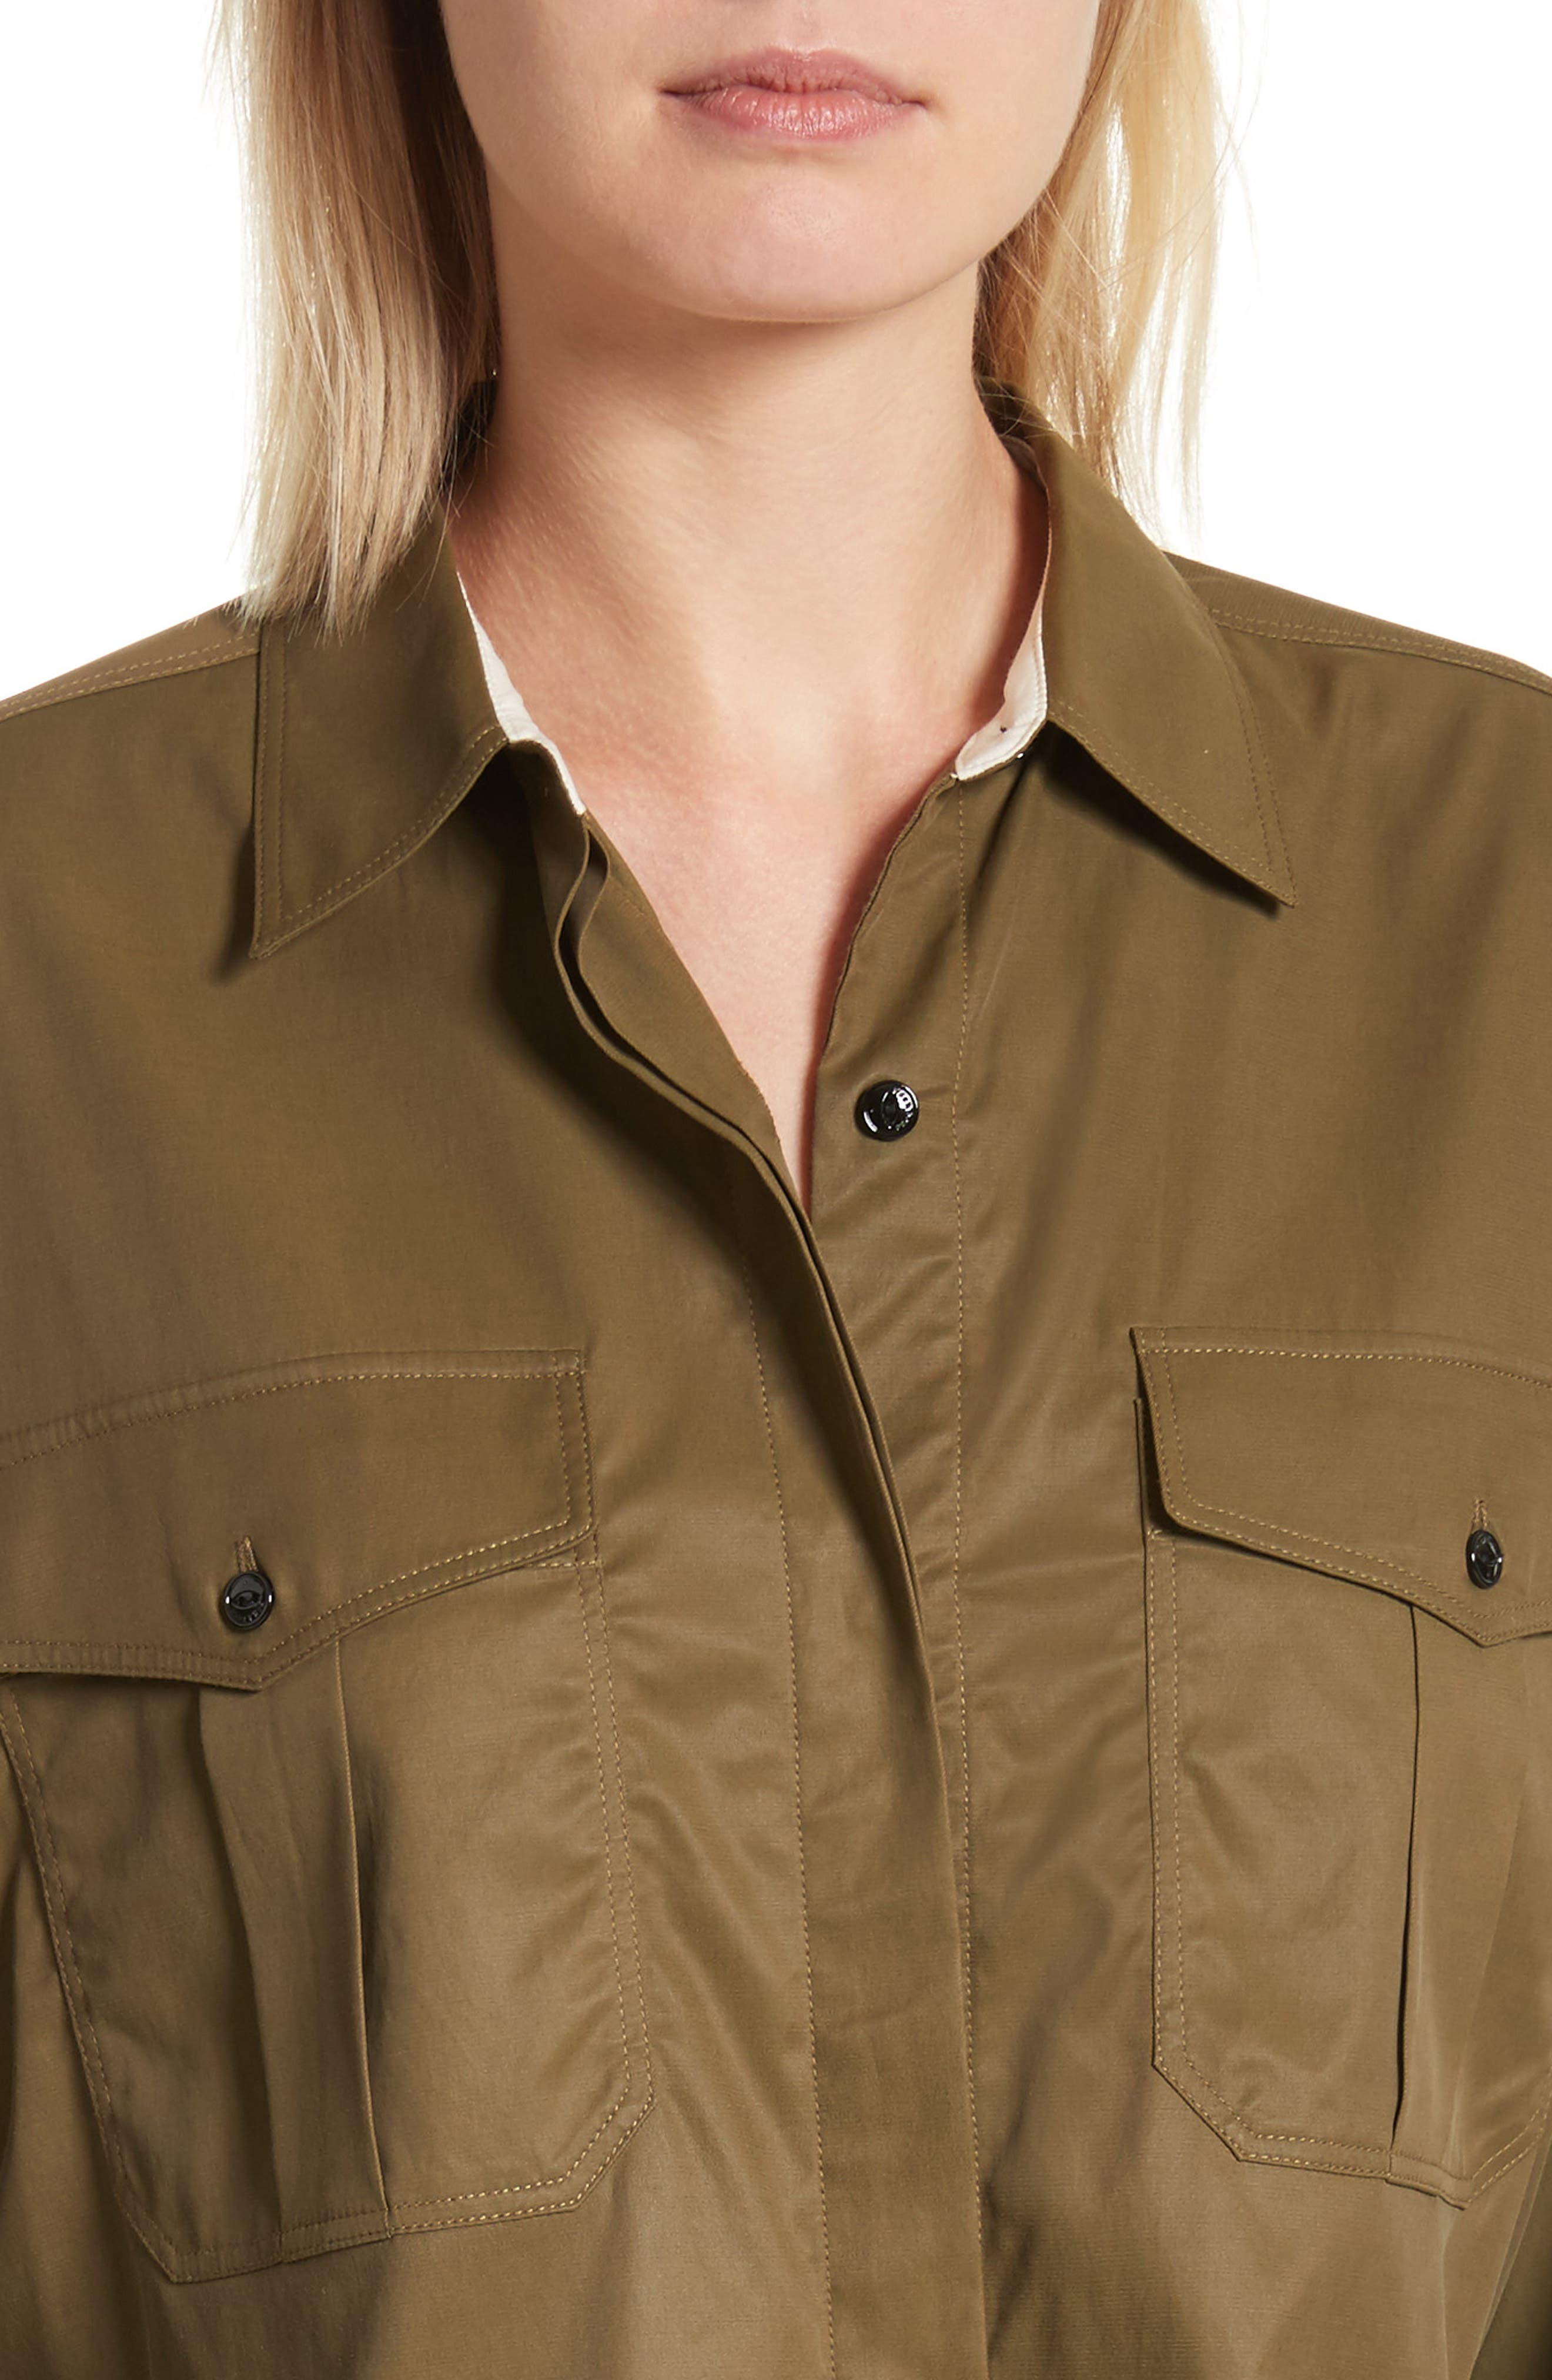 Mason Crop Shirt,                             Alternate thumbnail 4, color,                             Army Green